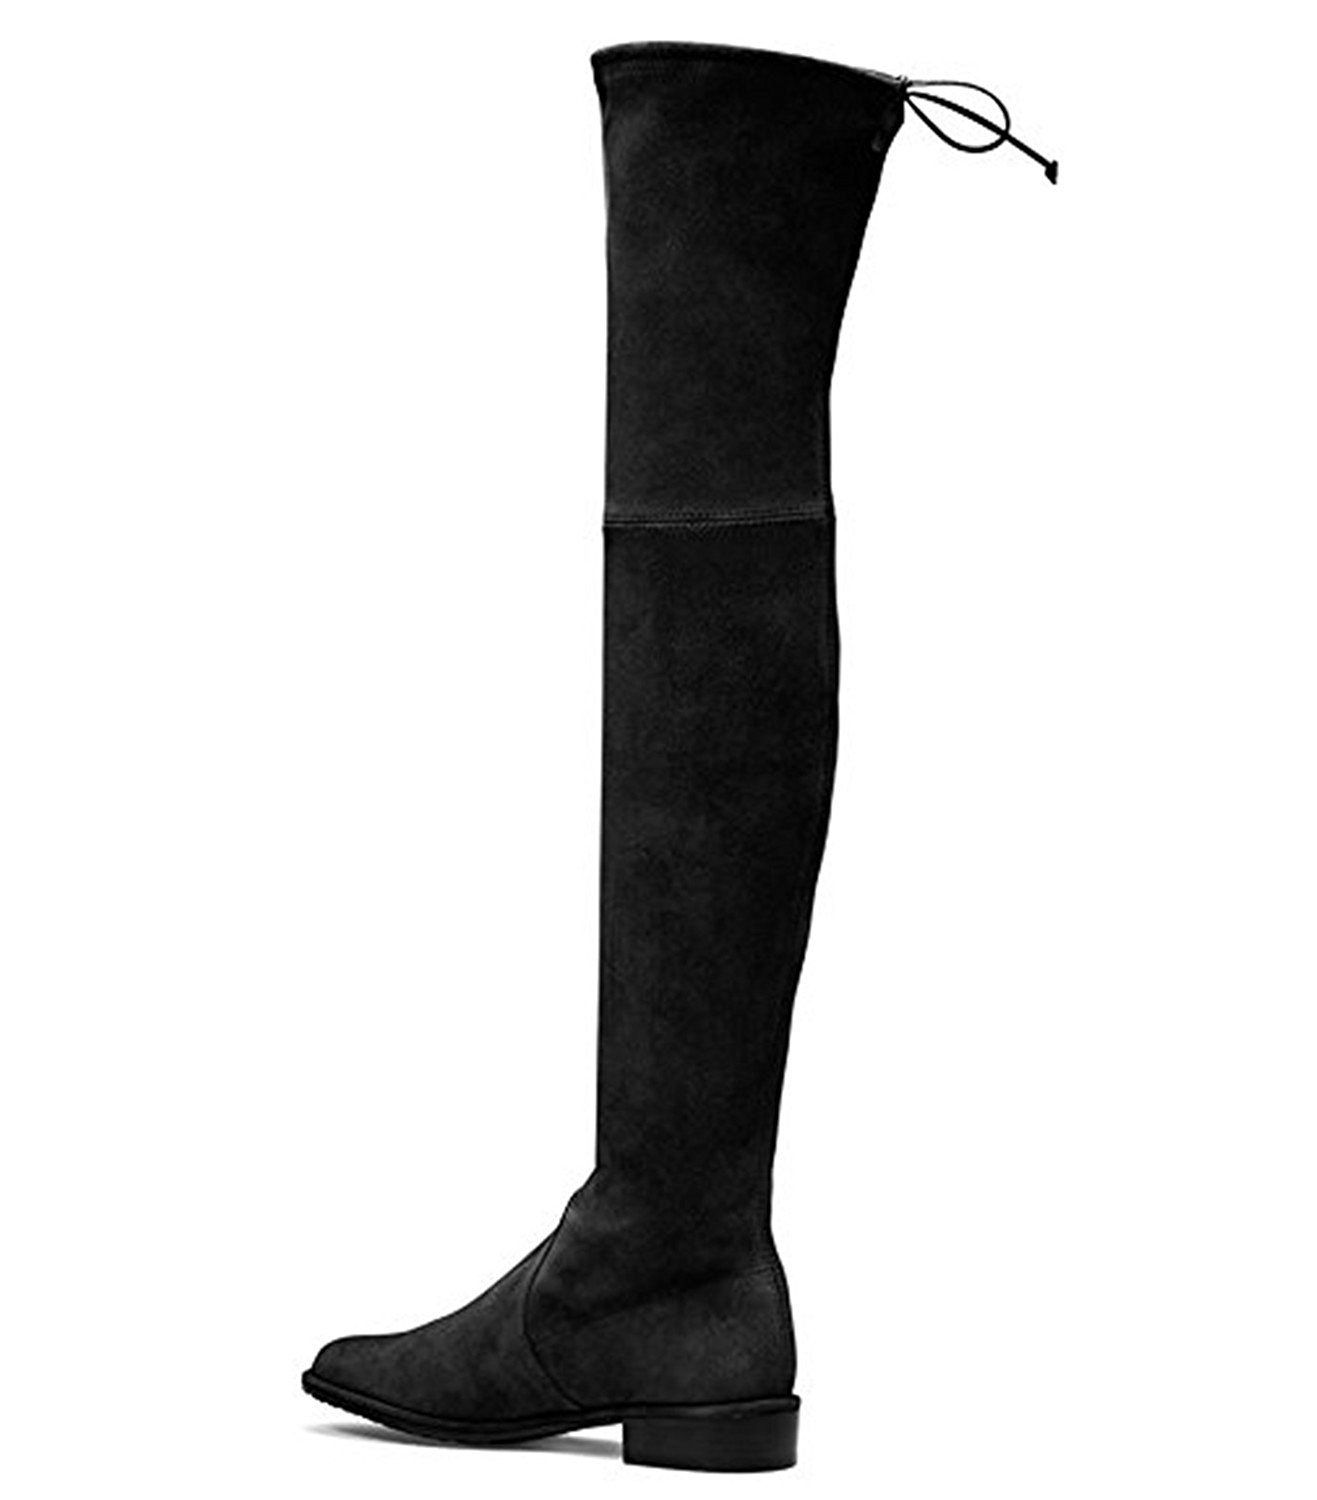 3bbeee0b1bf7 Get Quotations · ACEDICHY Knee High Boots